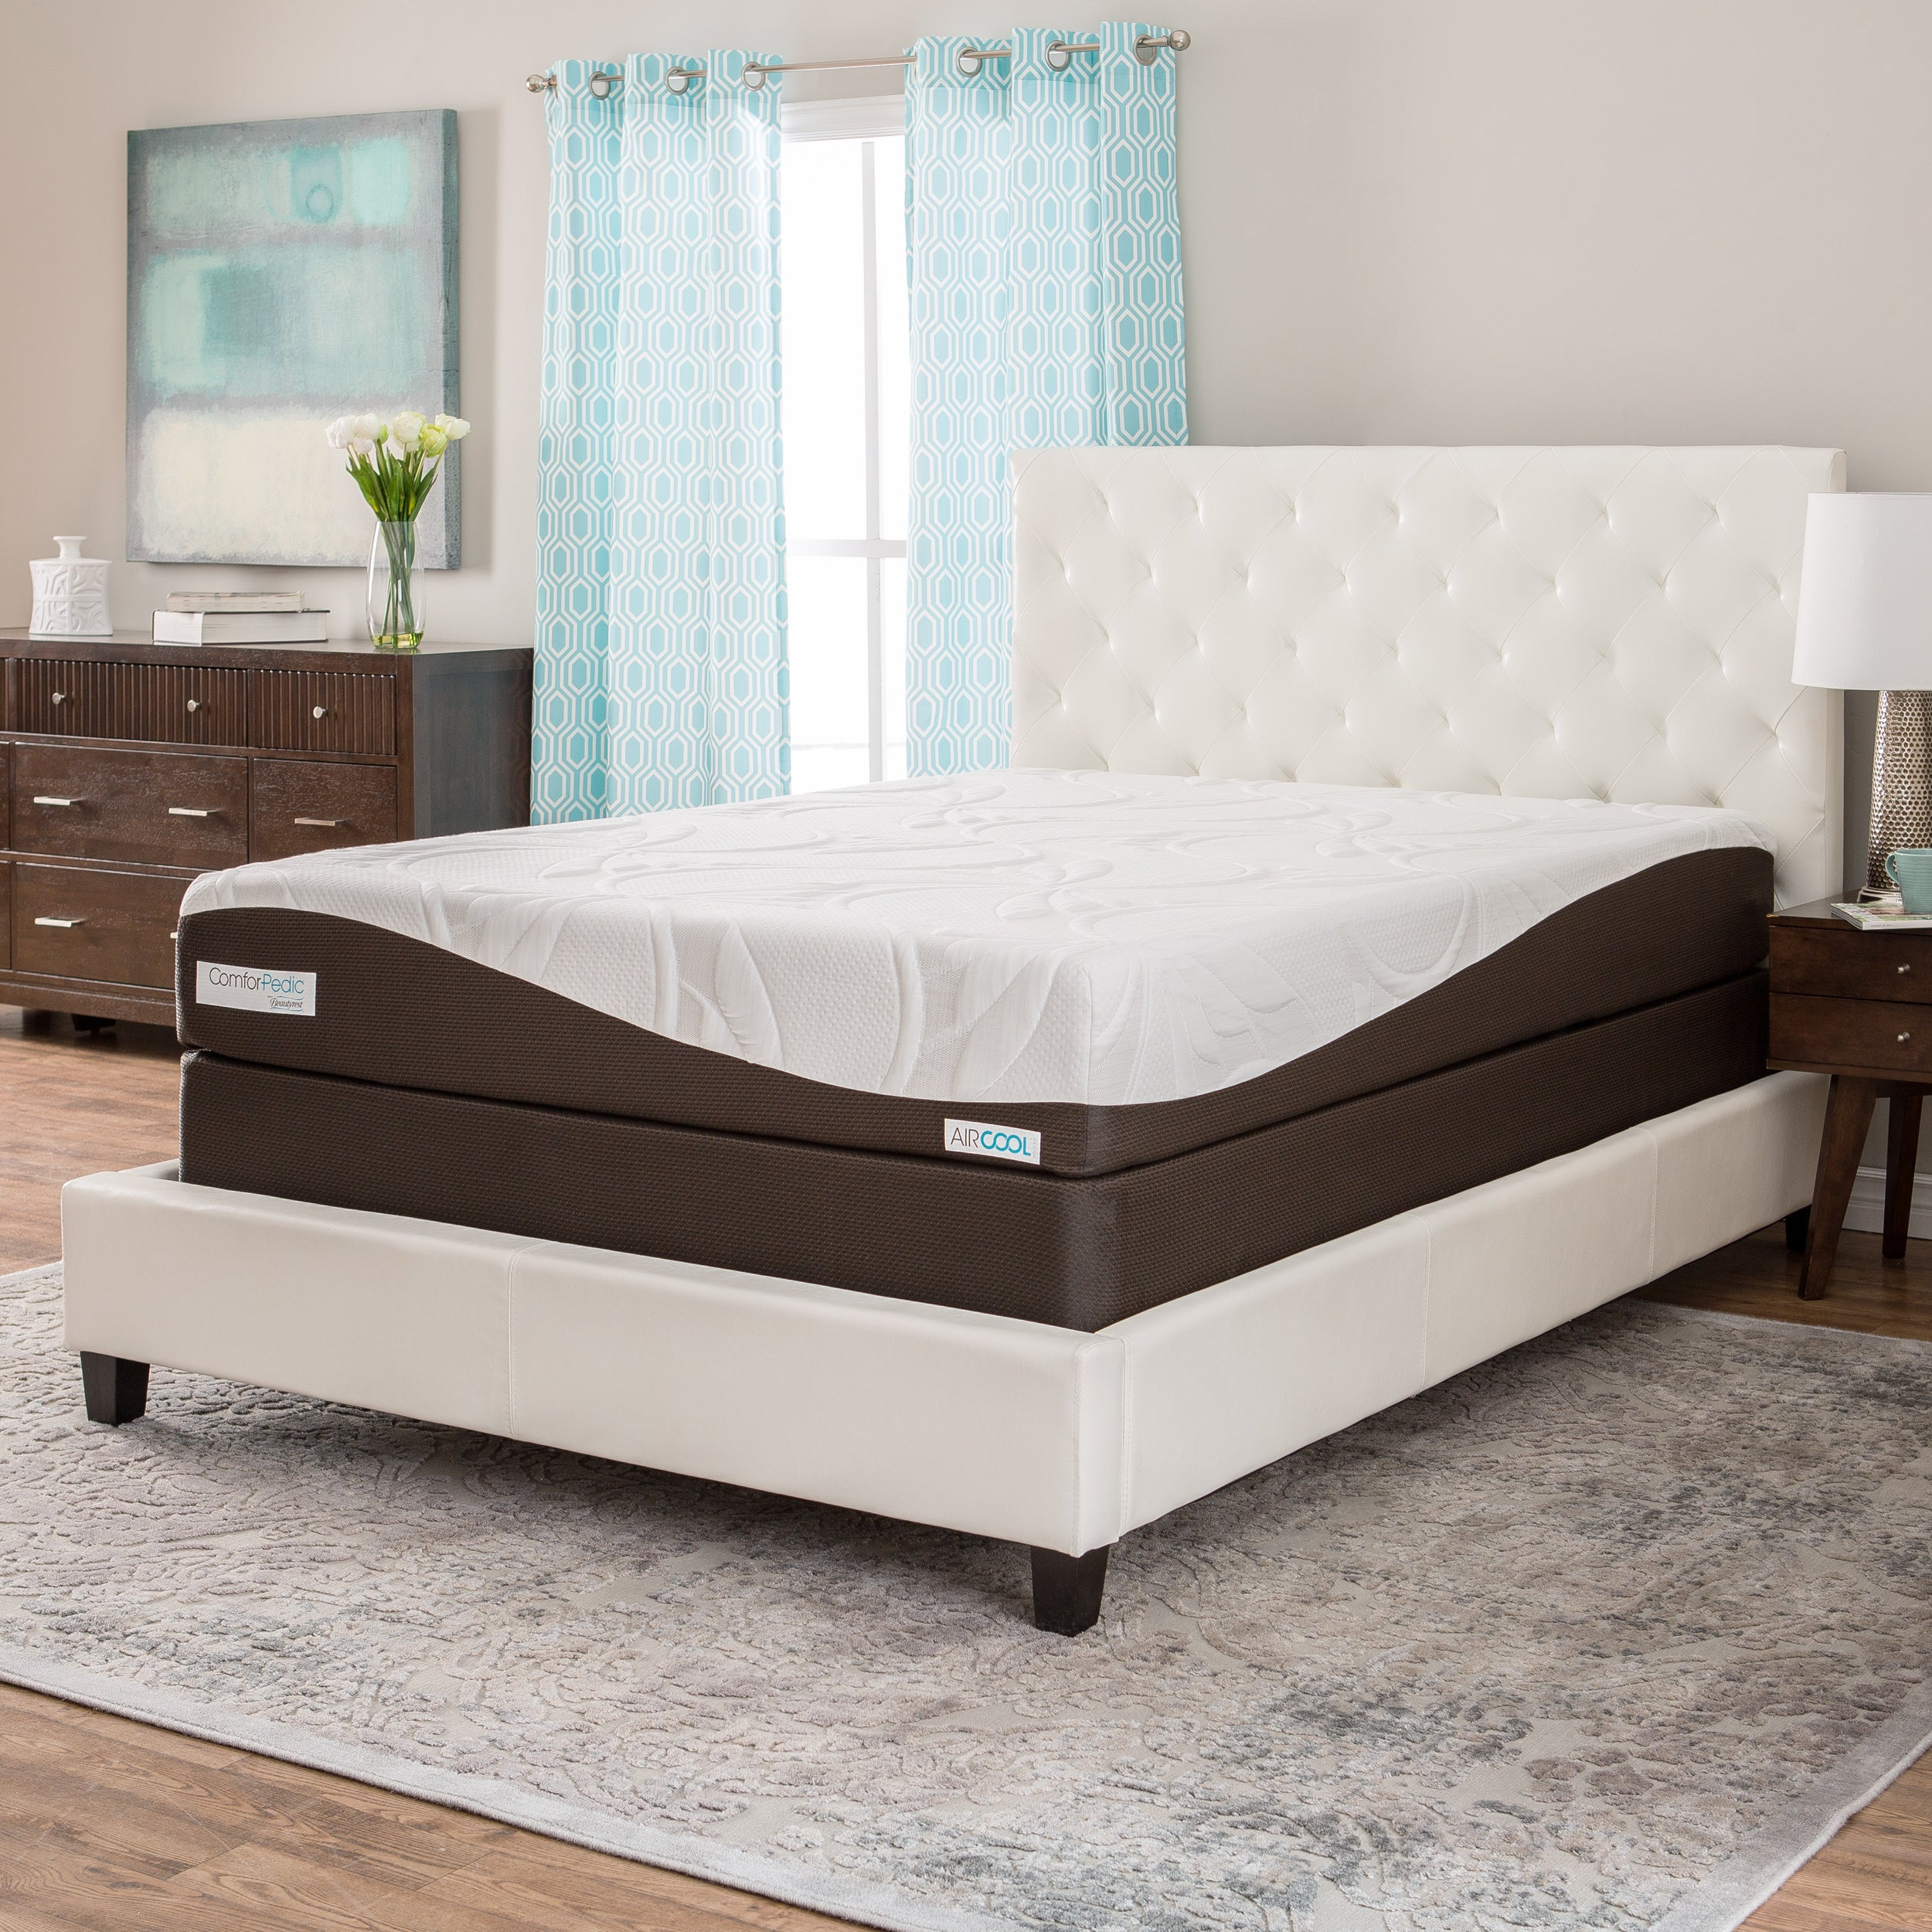 shipping gel king overstock garden memory choose comfort free your today product inch home slumber solutions foam mattress size